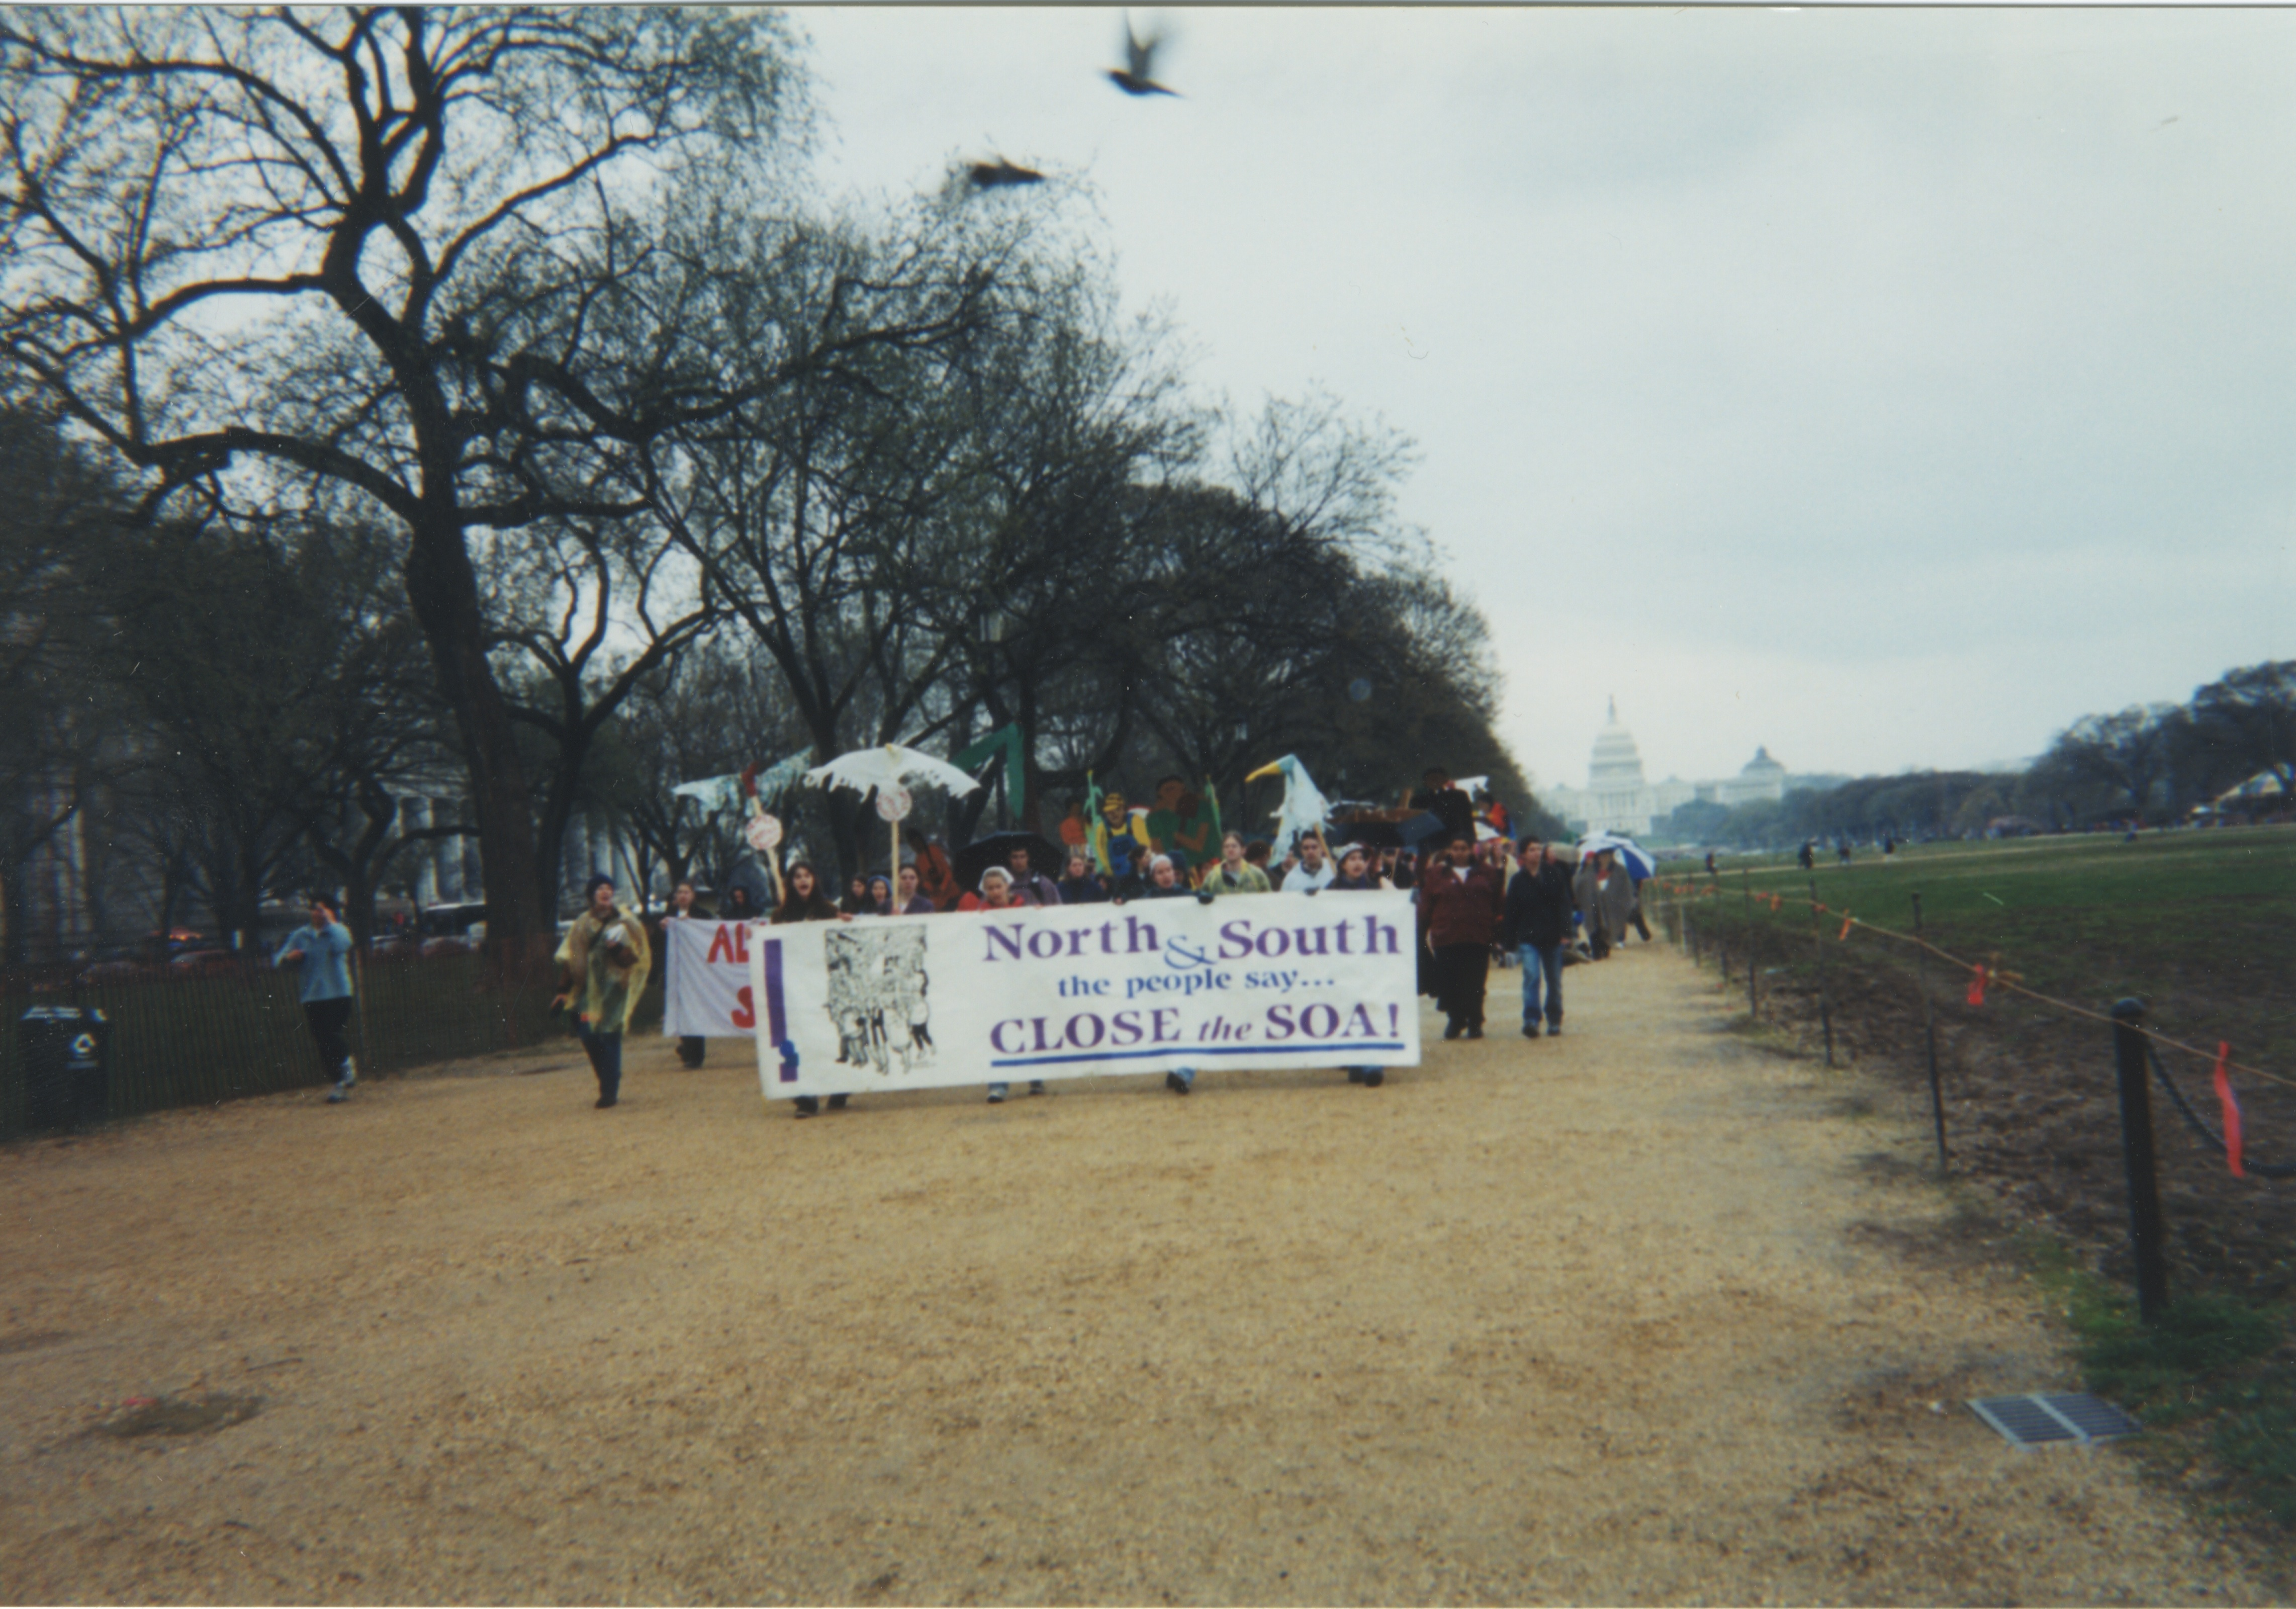 Interfaith Council for Peace and Justice: Marching at SOAW Demonstration in Washington, D.C., 2001 image